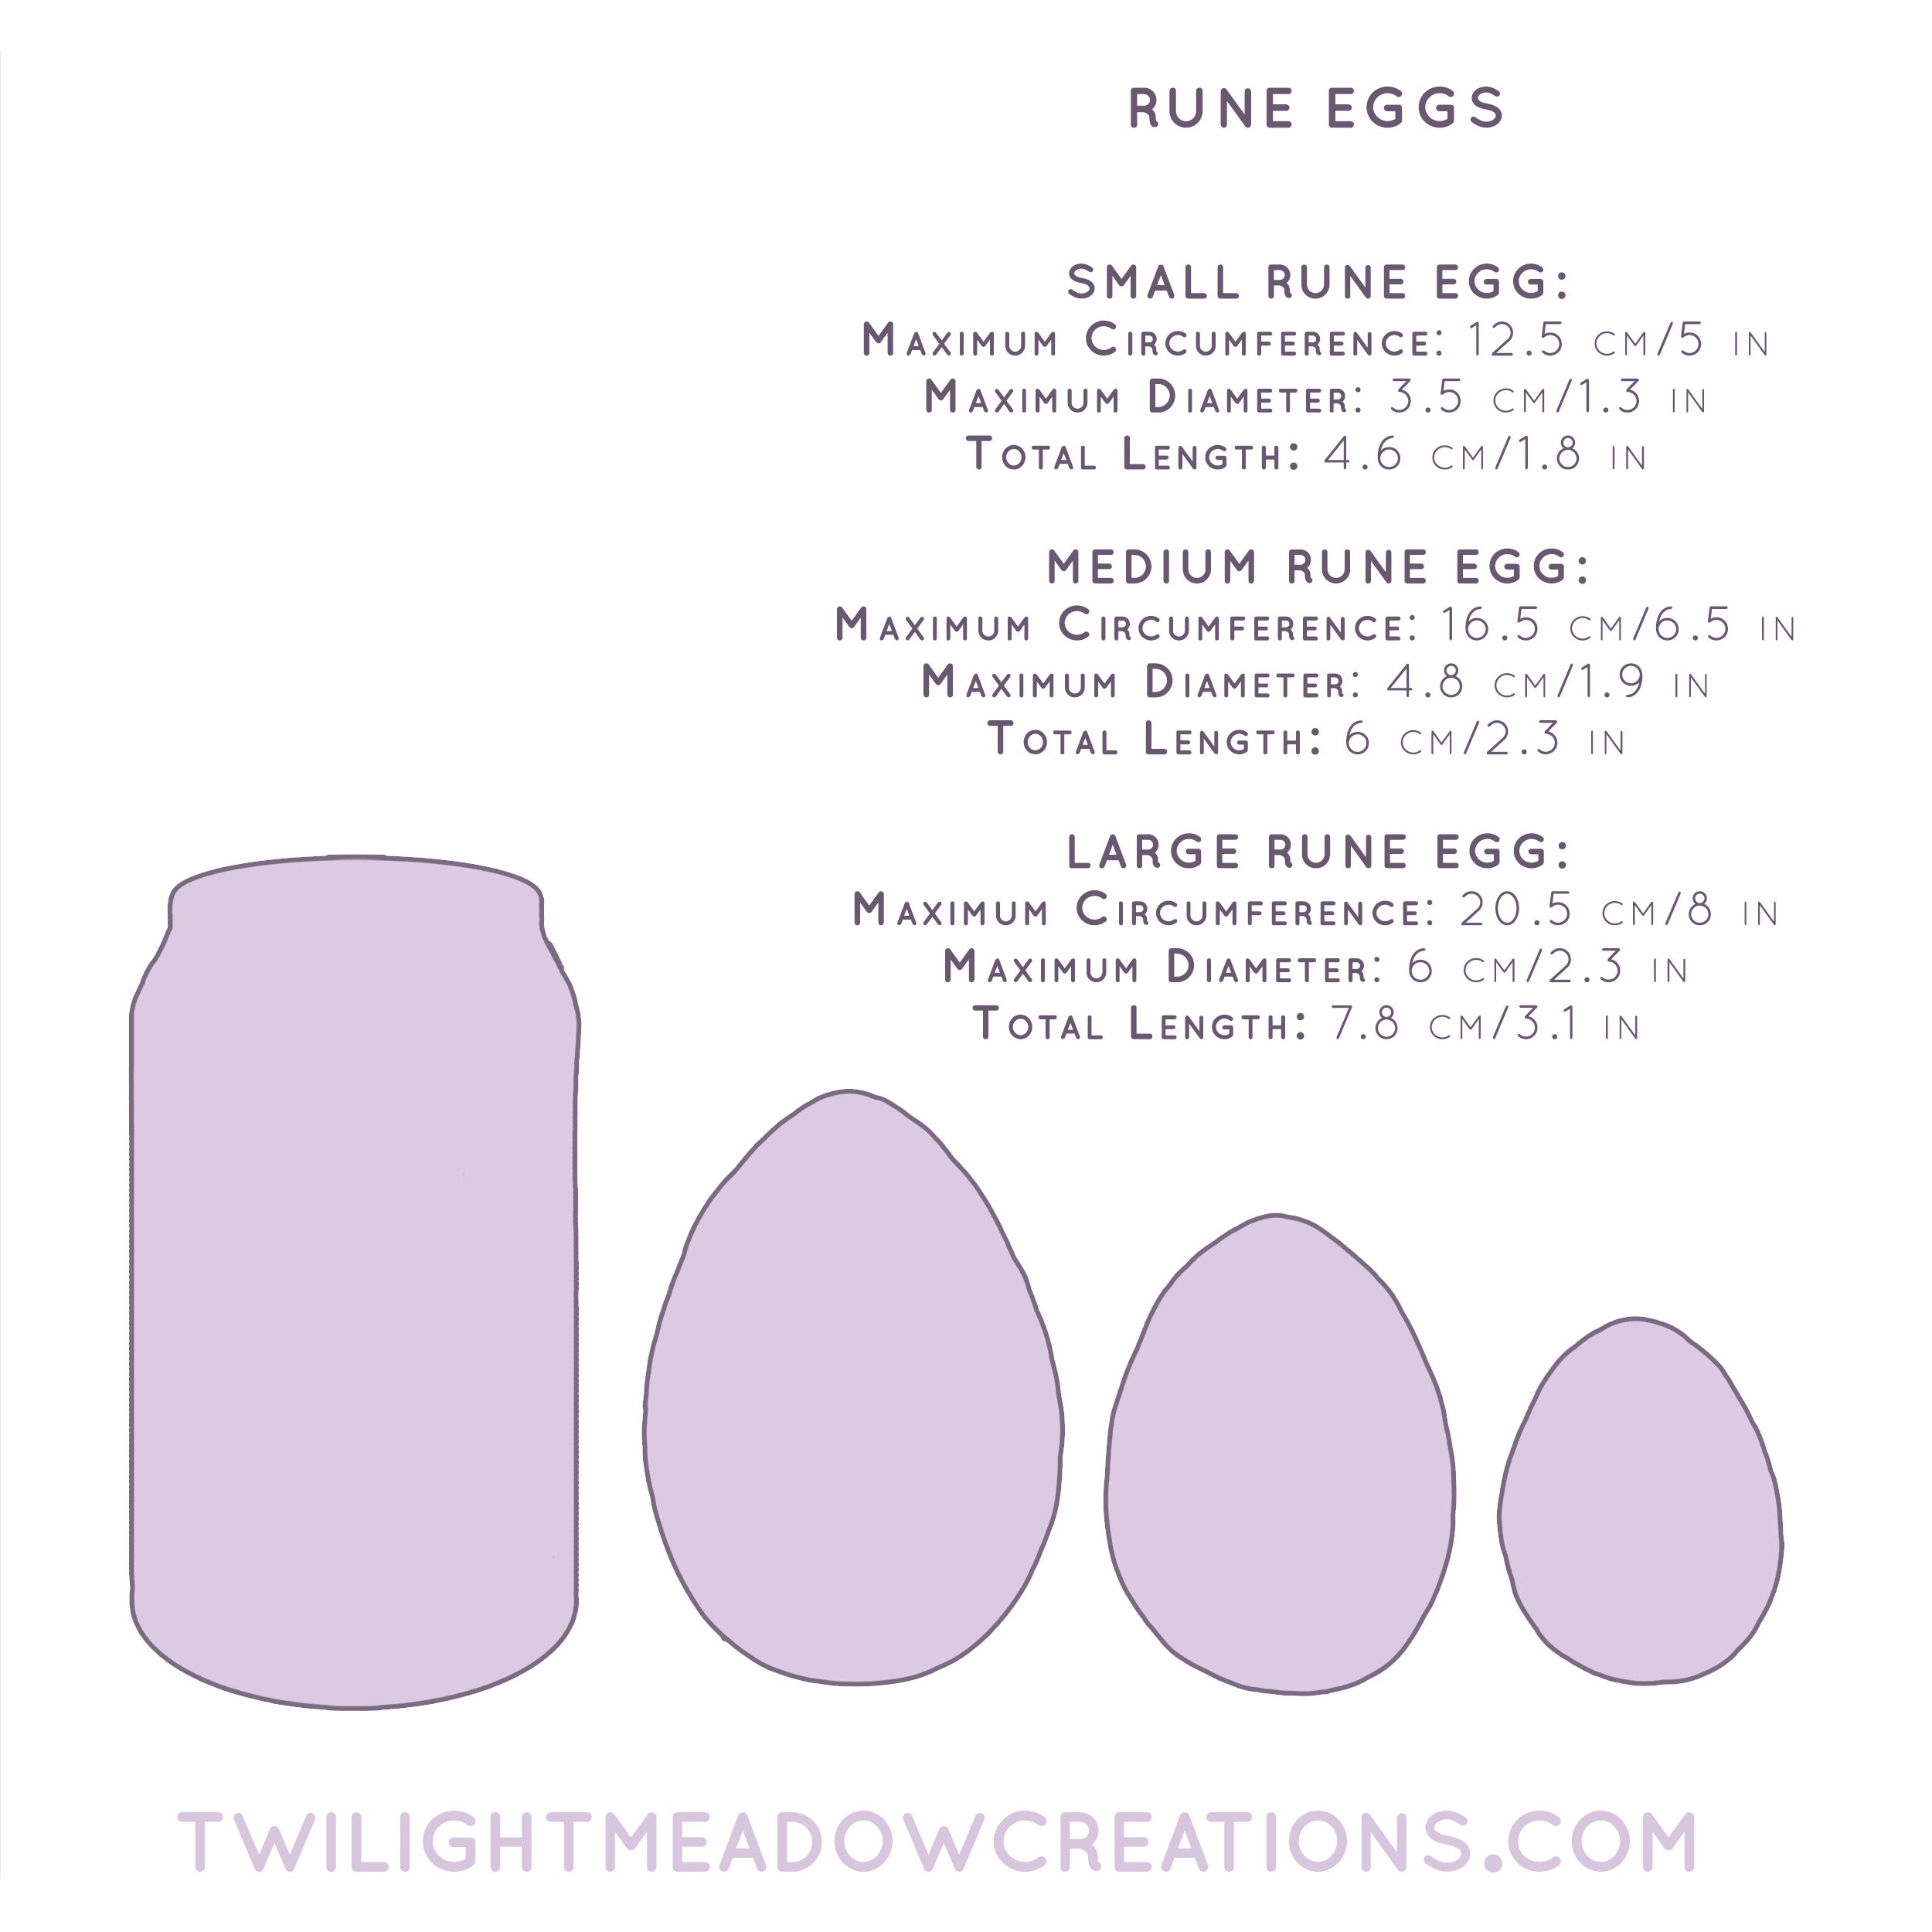 Small Rune Egg (Firmness: Firm)